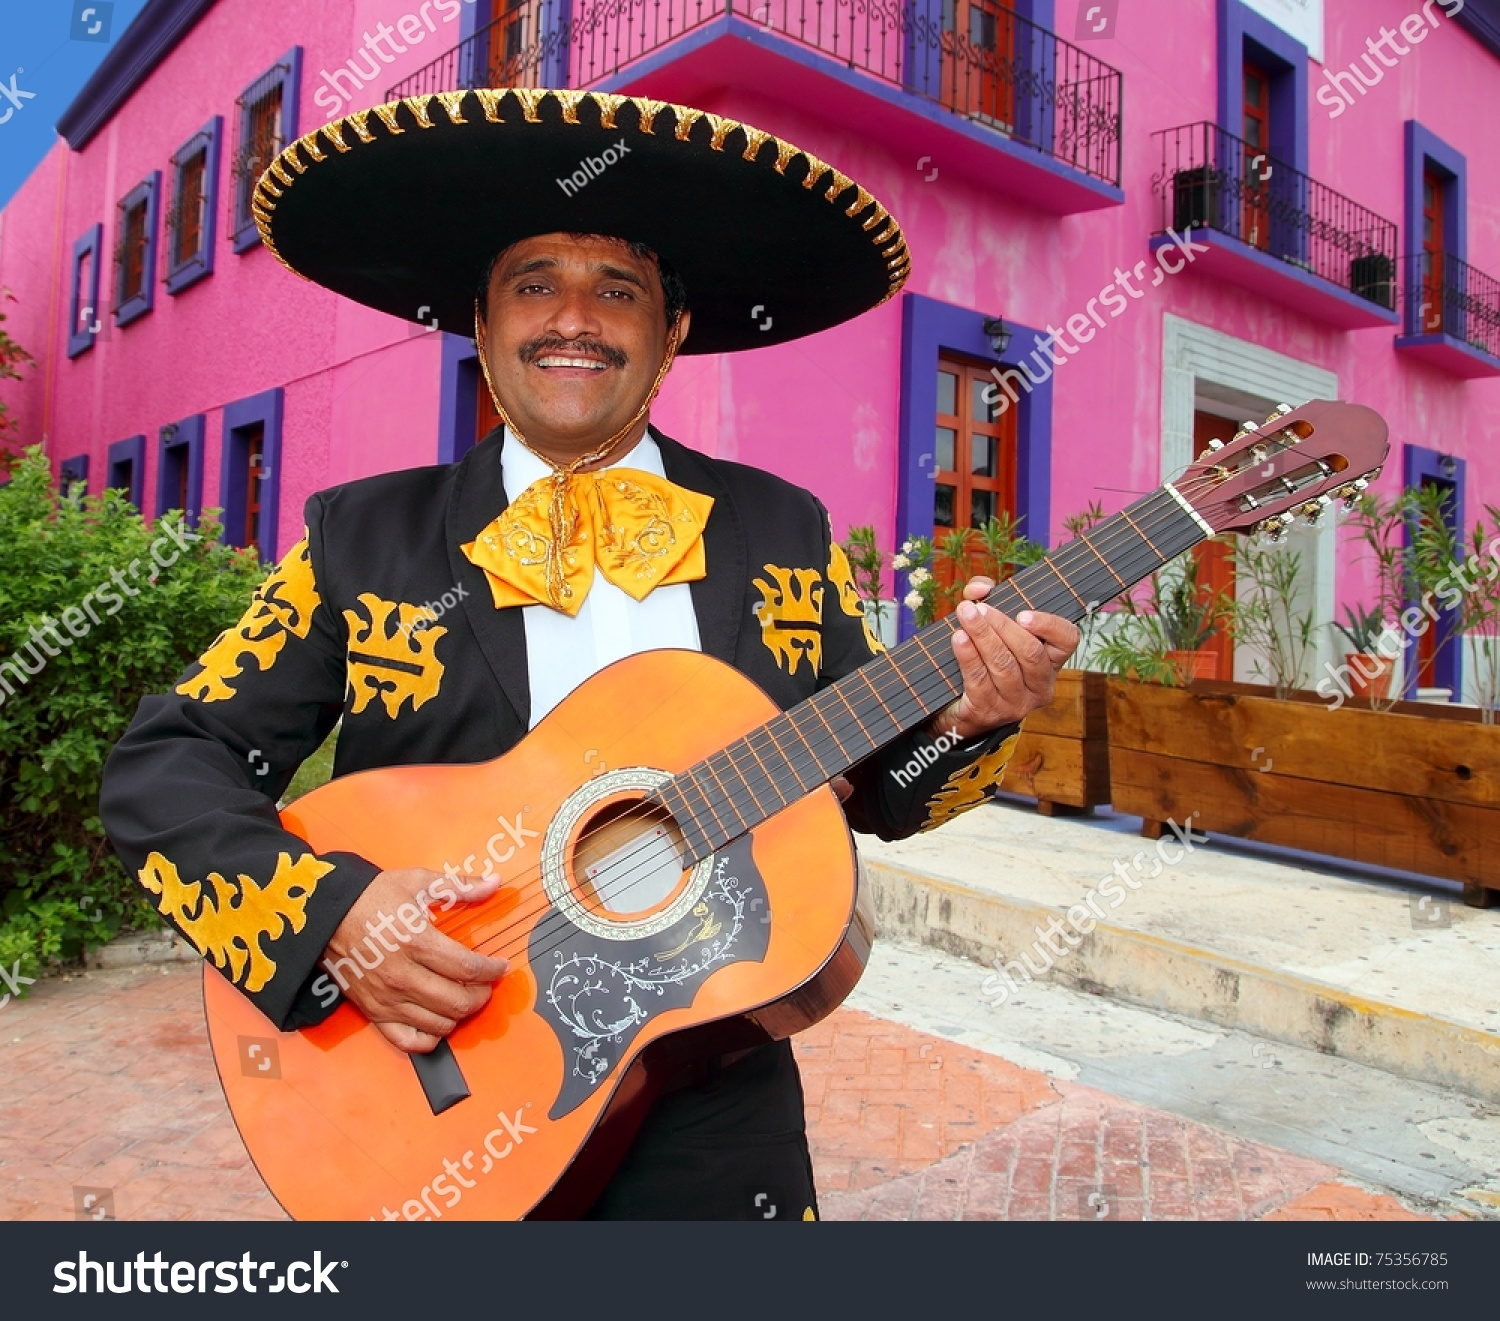 How To Become A Mariachi Singer